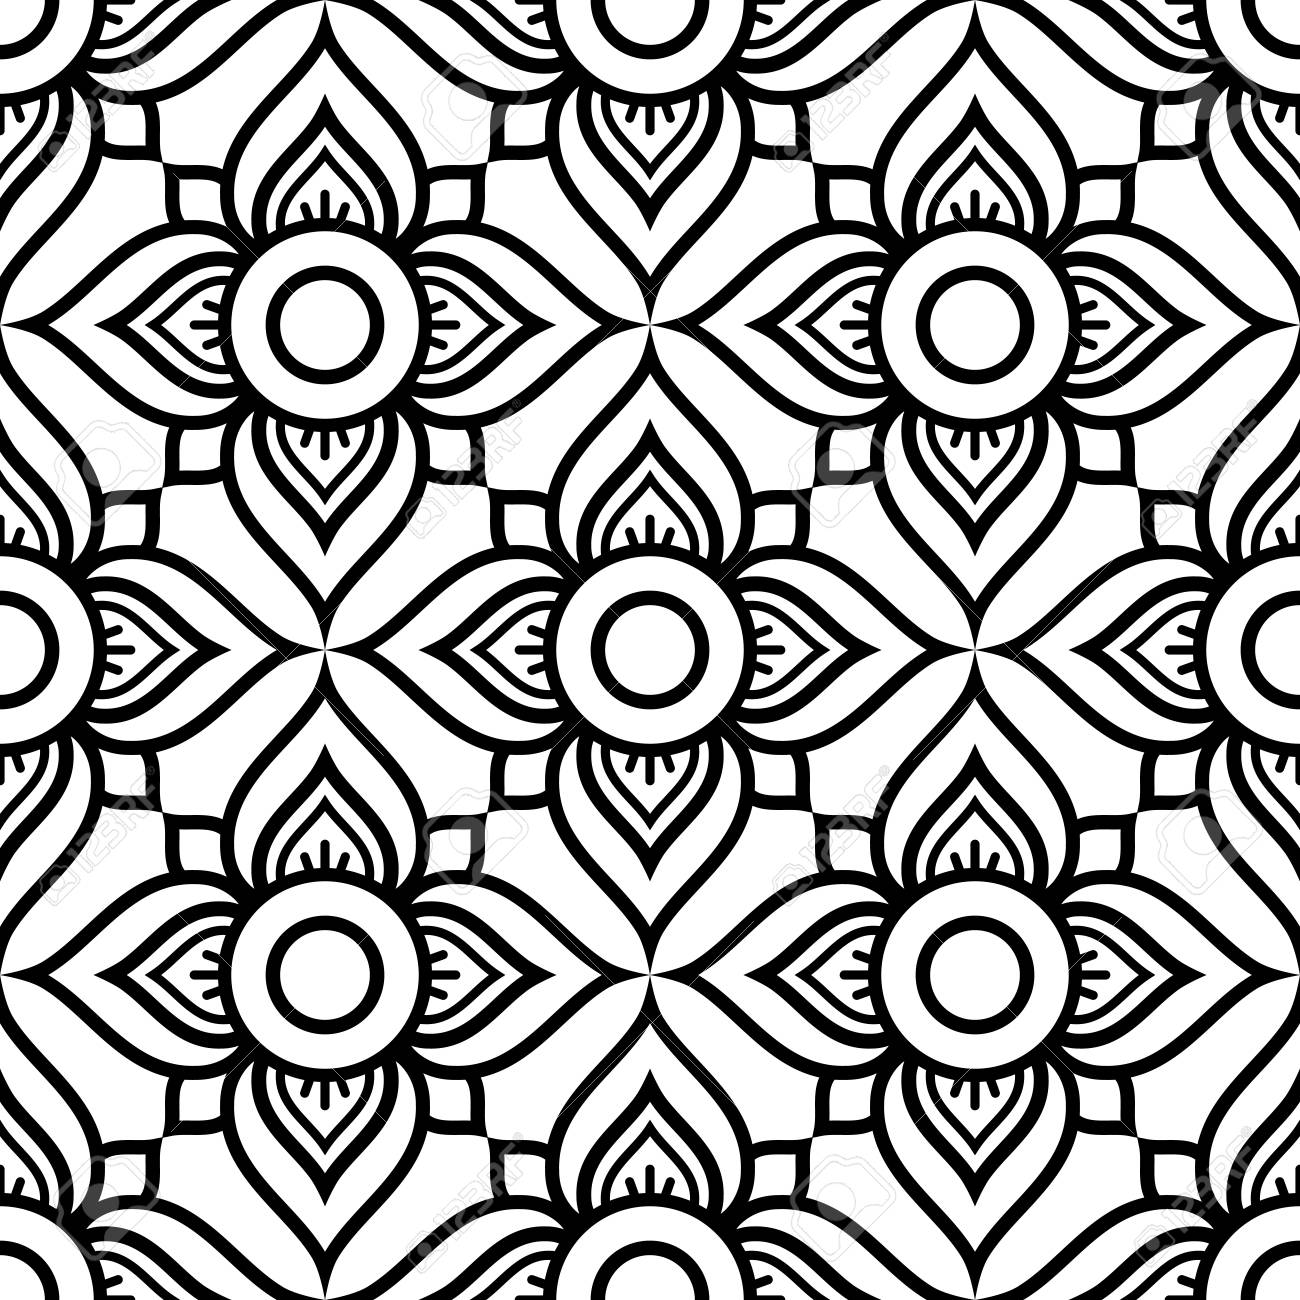 Thai Flowers Seamless Pattern Black And White Repetitive Design